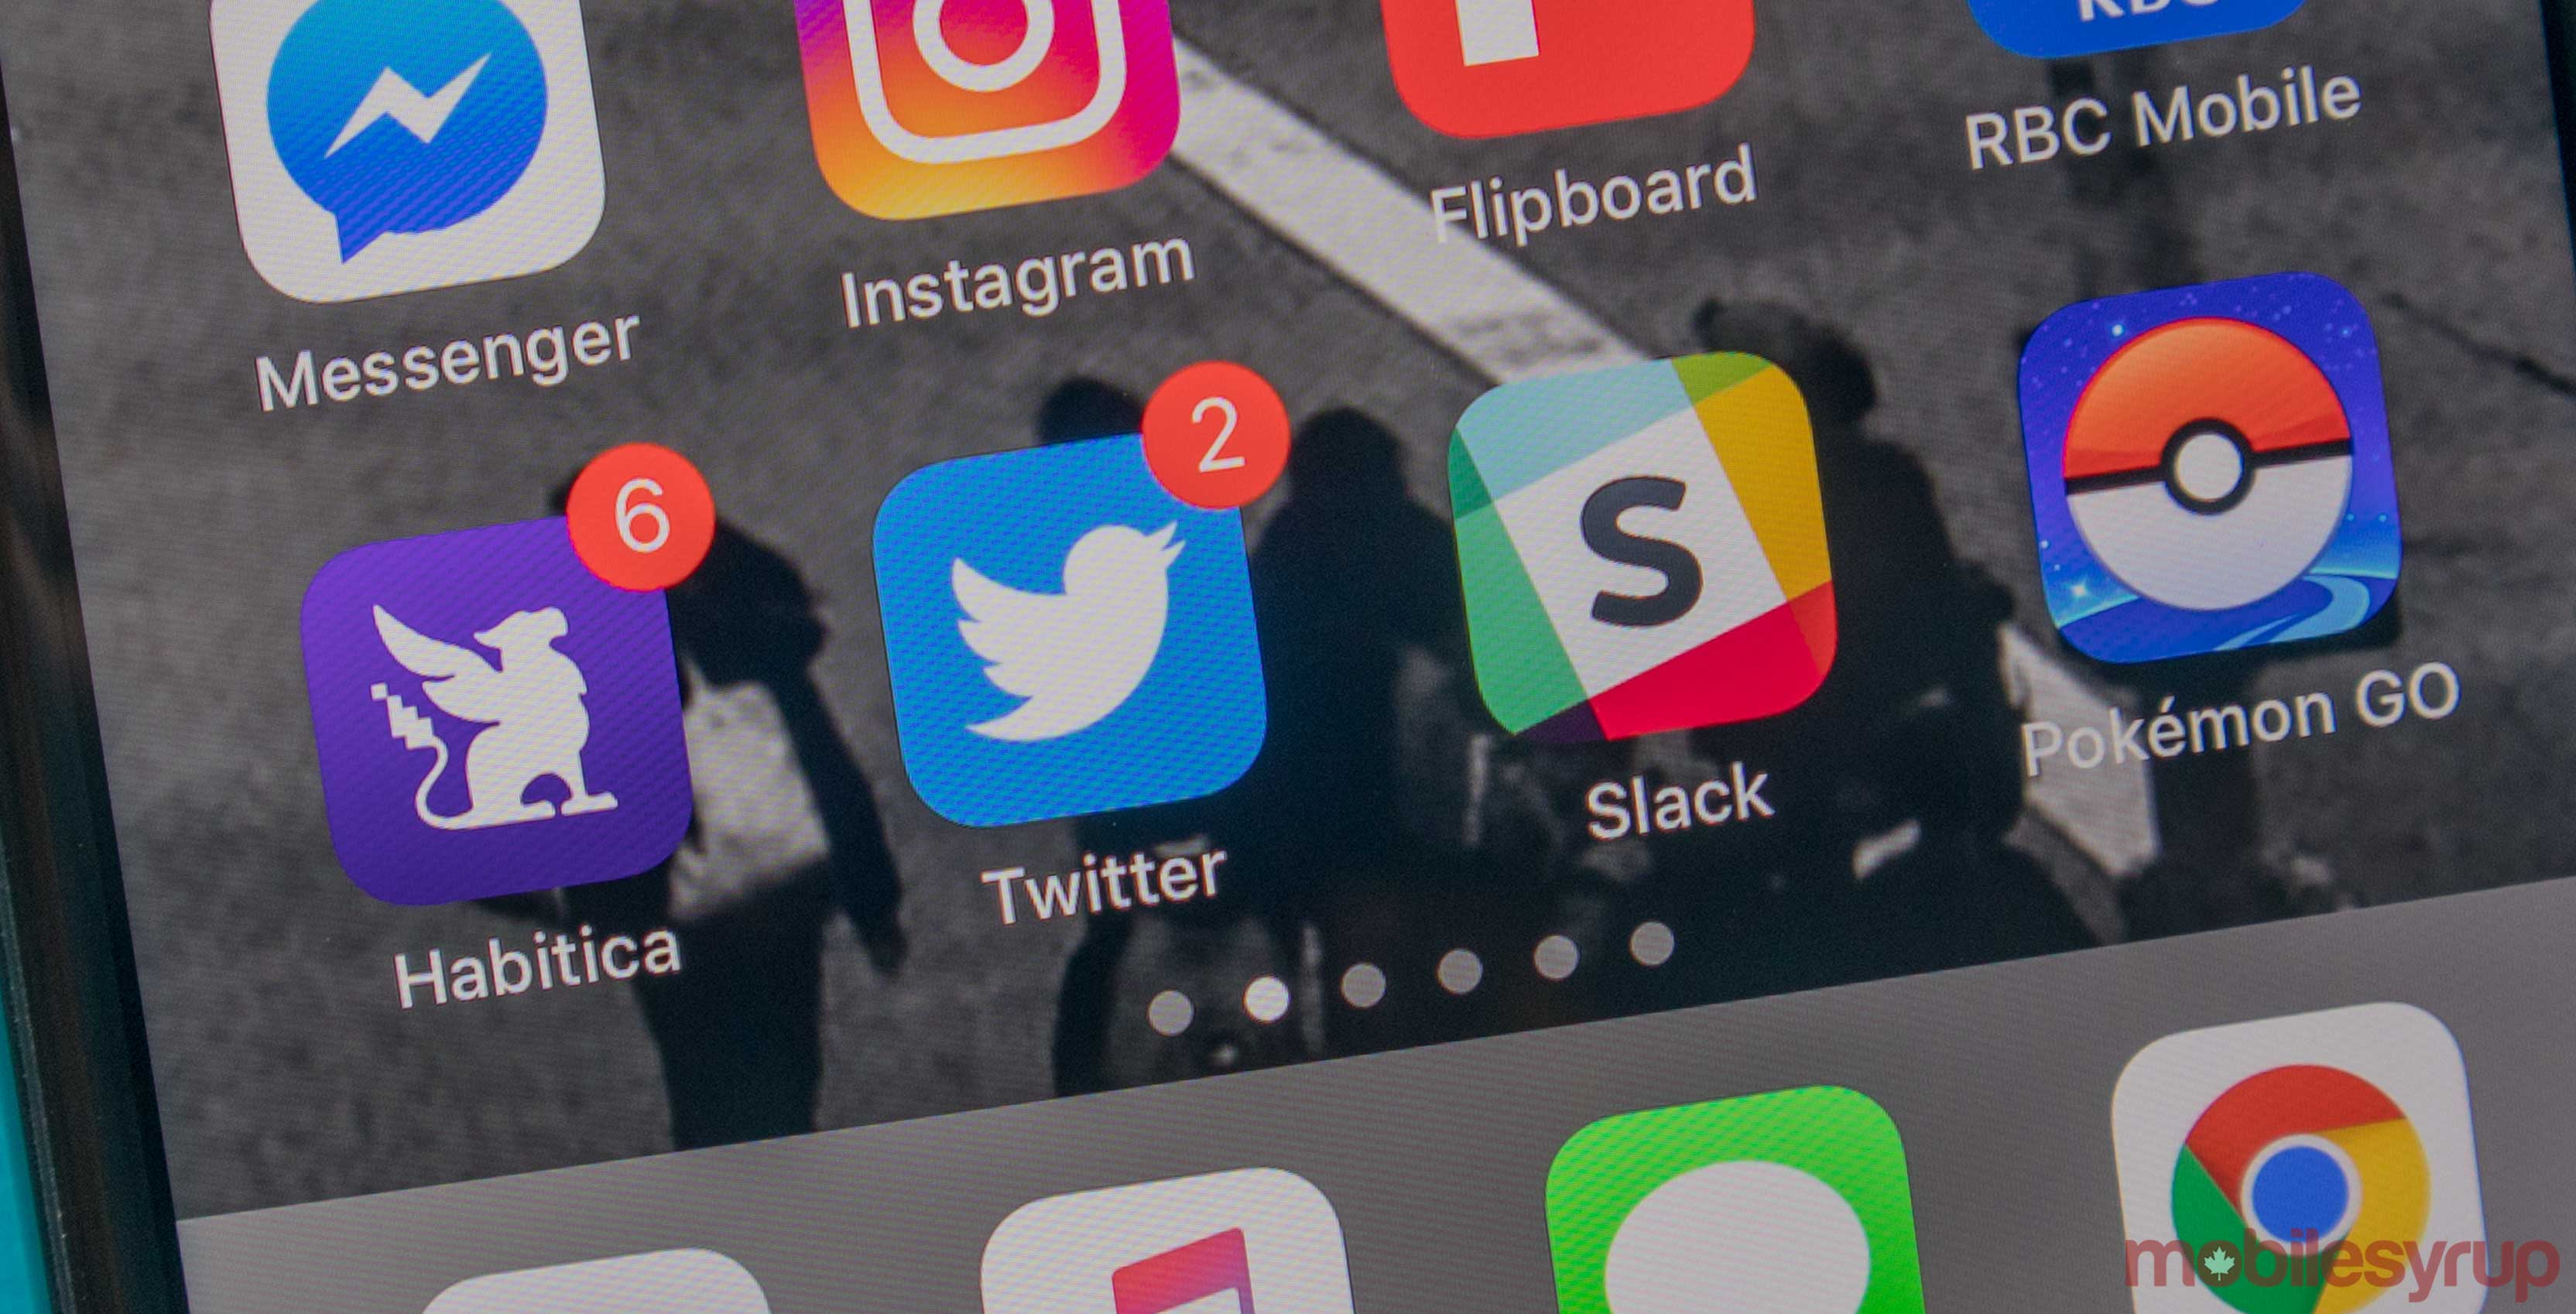 Twitter is tightening its grip on fake accounts and spam